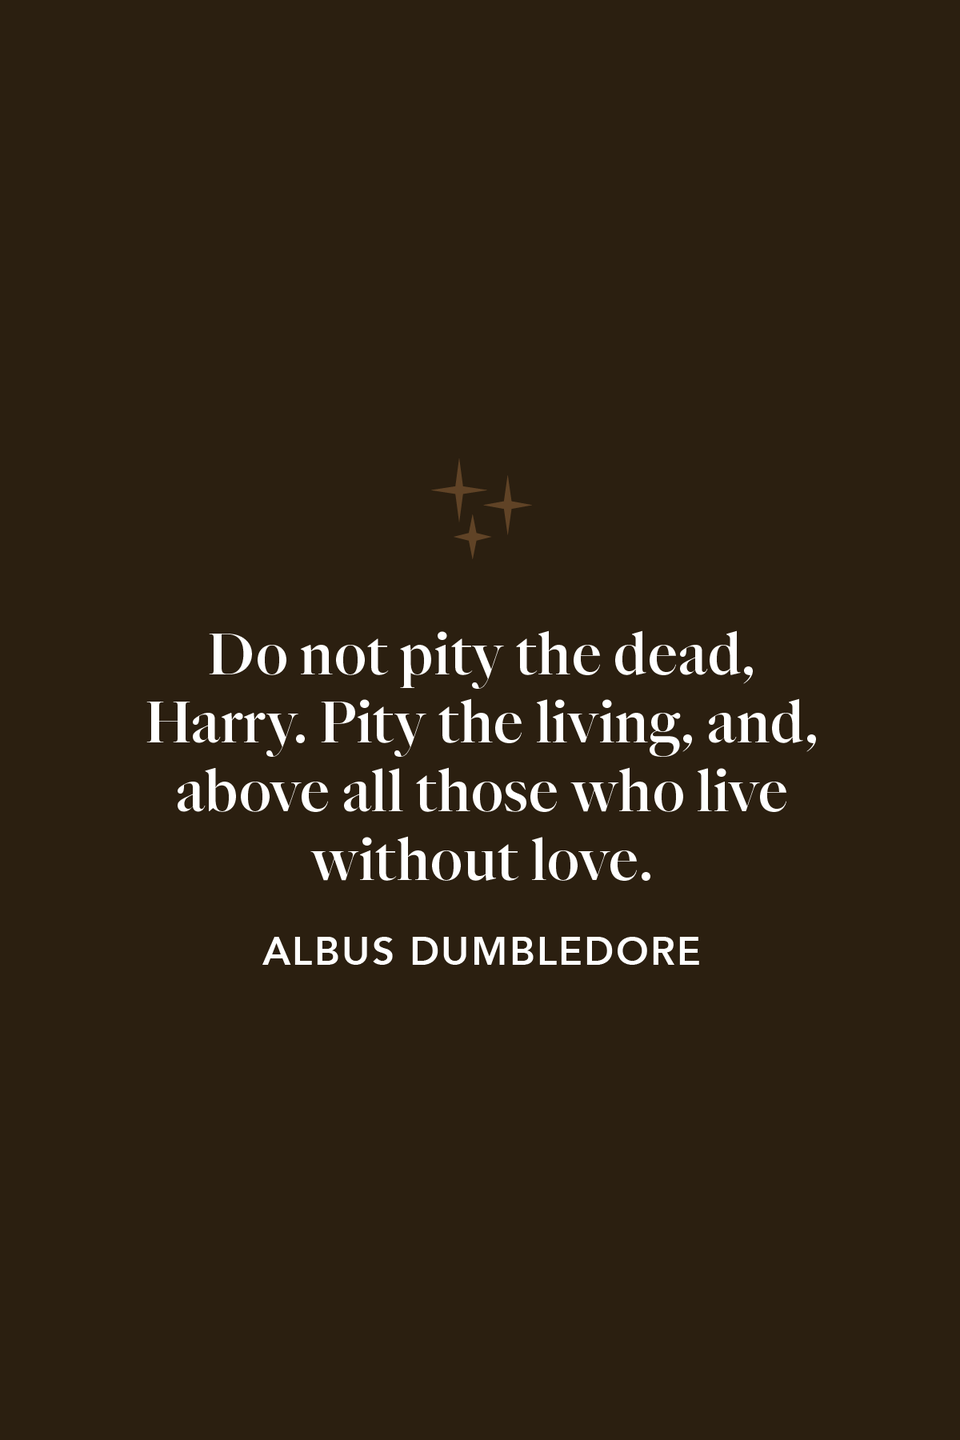 """<p>""""Do not pity the dead, Harry. Pity the living, and, above all those who live without love,"""" Dumbledore says in chapter 35 of <em>The Deathly Hallows</em> when looking at the remains of Voldemort's soul.</p>"""